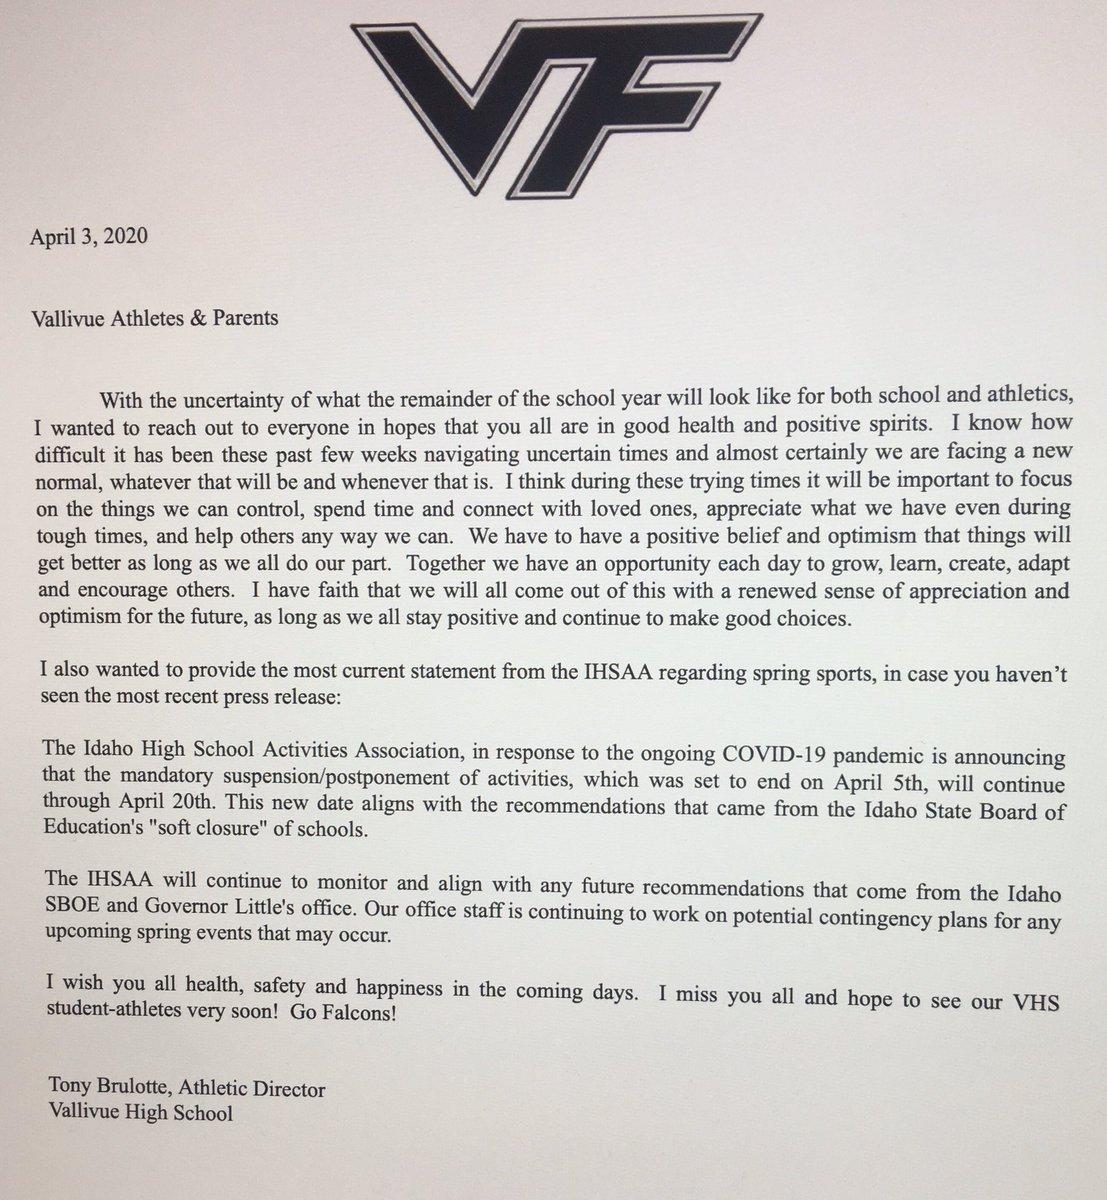 Hey all @officialvhs2 student athletes and parents!  Please see the attached letter from the Athletic department at VHS  @VallivueSoftbll @VallivueVideo @Vallivue_Hoops @vhsbaseball1 @VF_Football @michaellycklama @MrIdahoPreps @FalconTerritory @VallivueGirls #goldbloodedpic.twitter.com/tNdaStK3UK